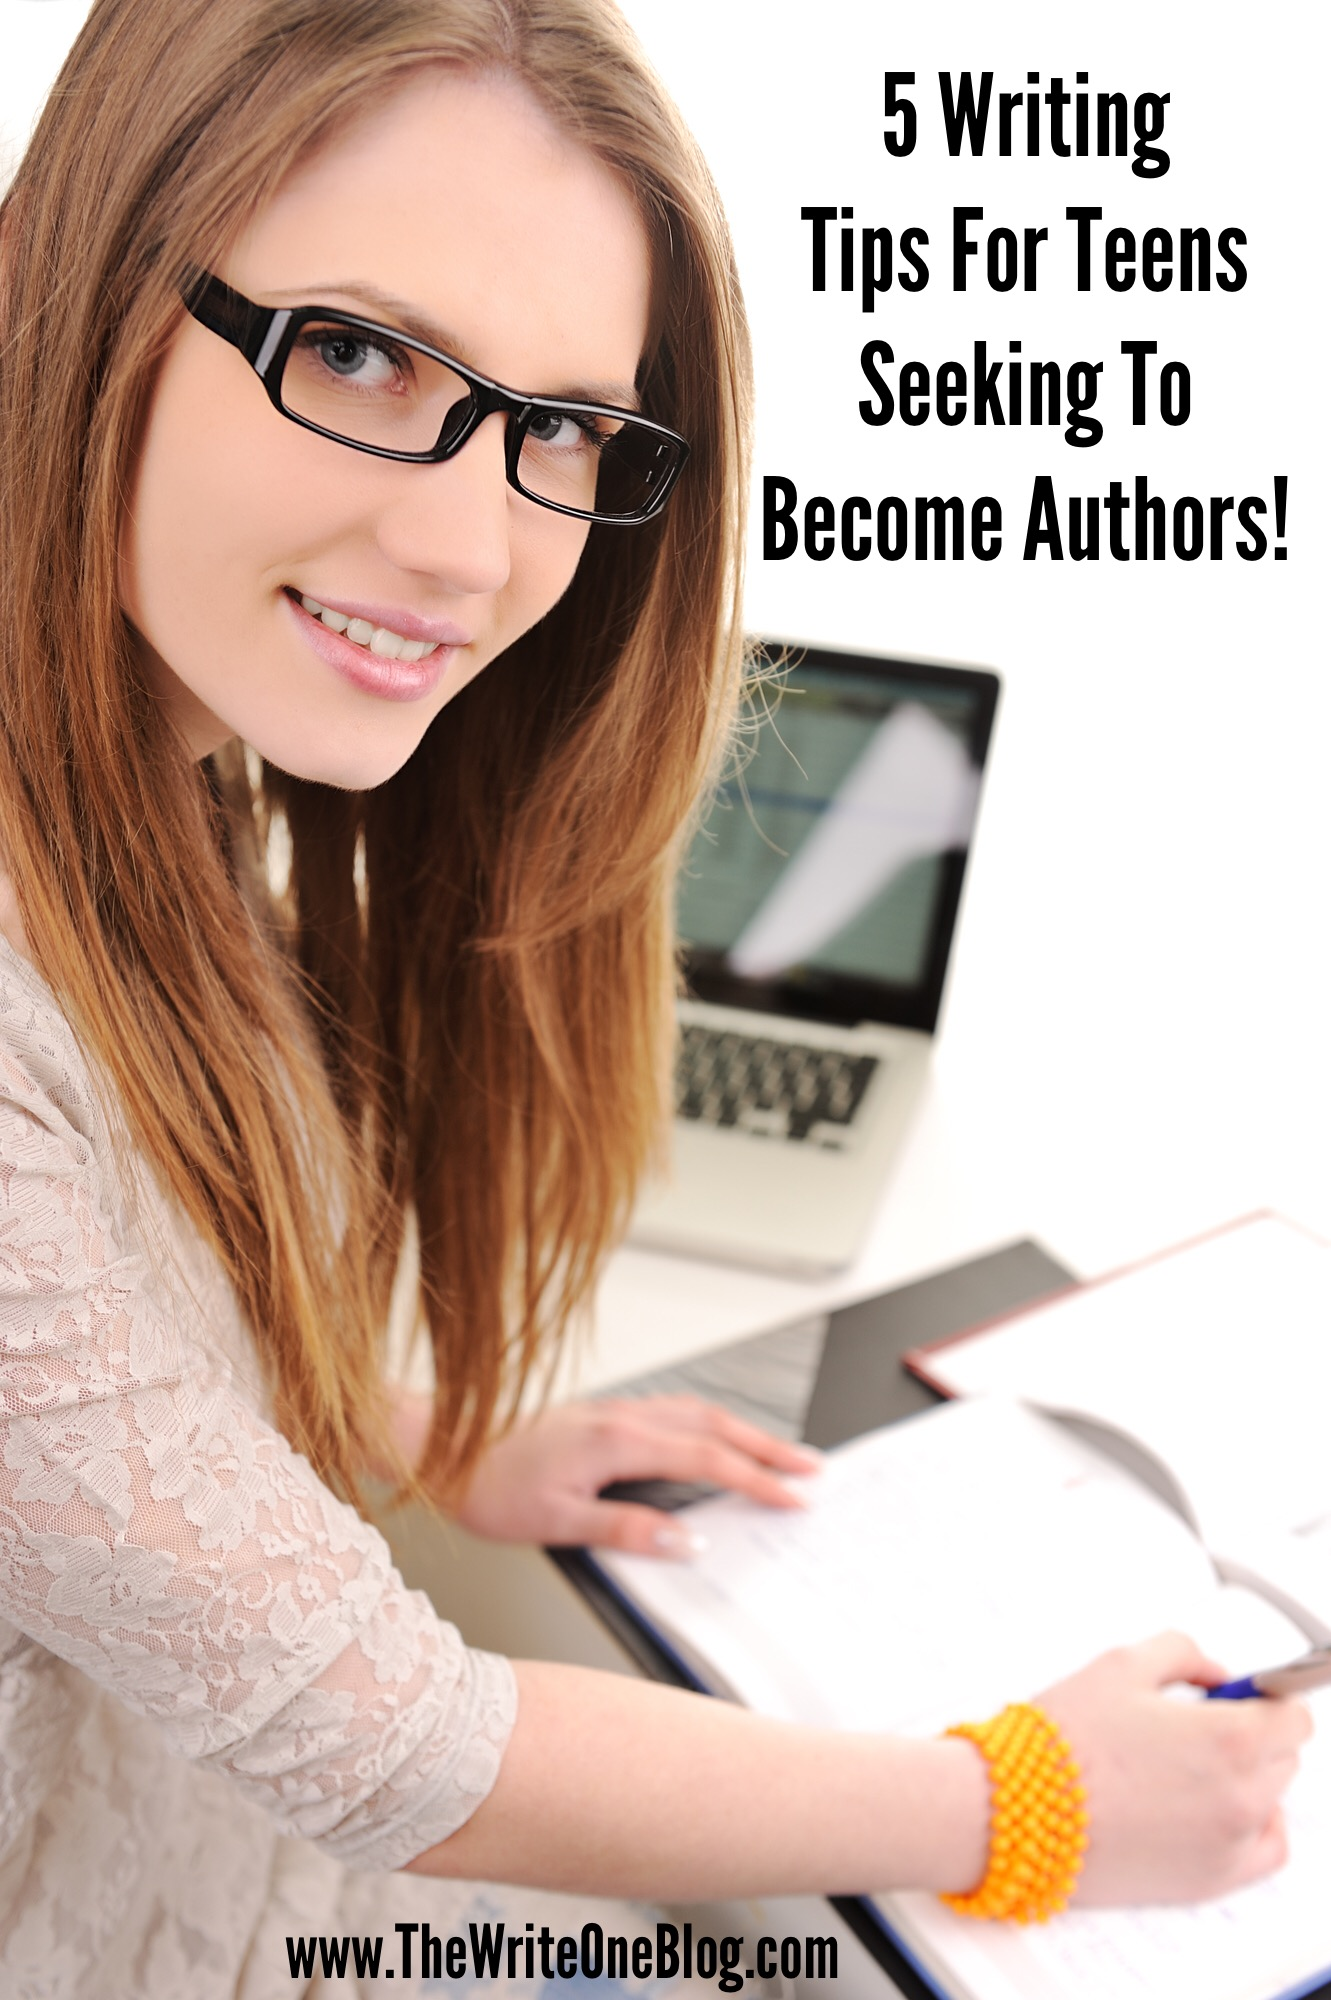 5 Writing Tips For Teens Seeking To Become Authors!